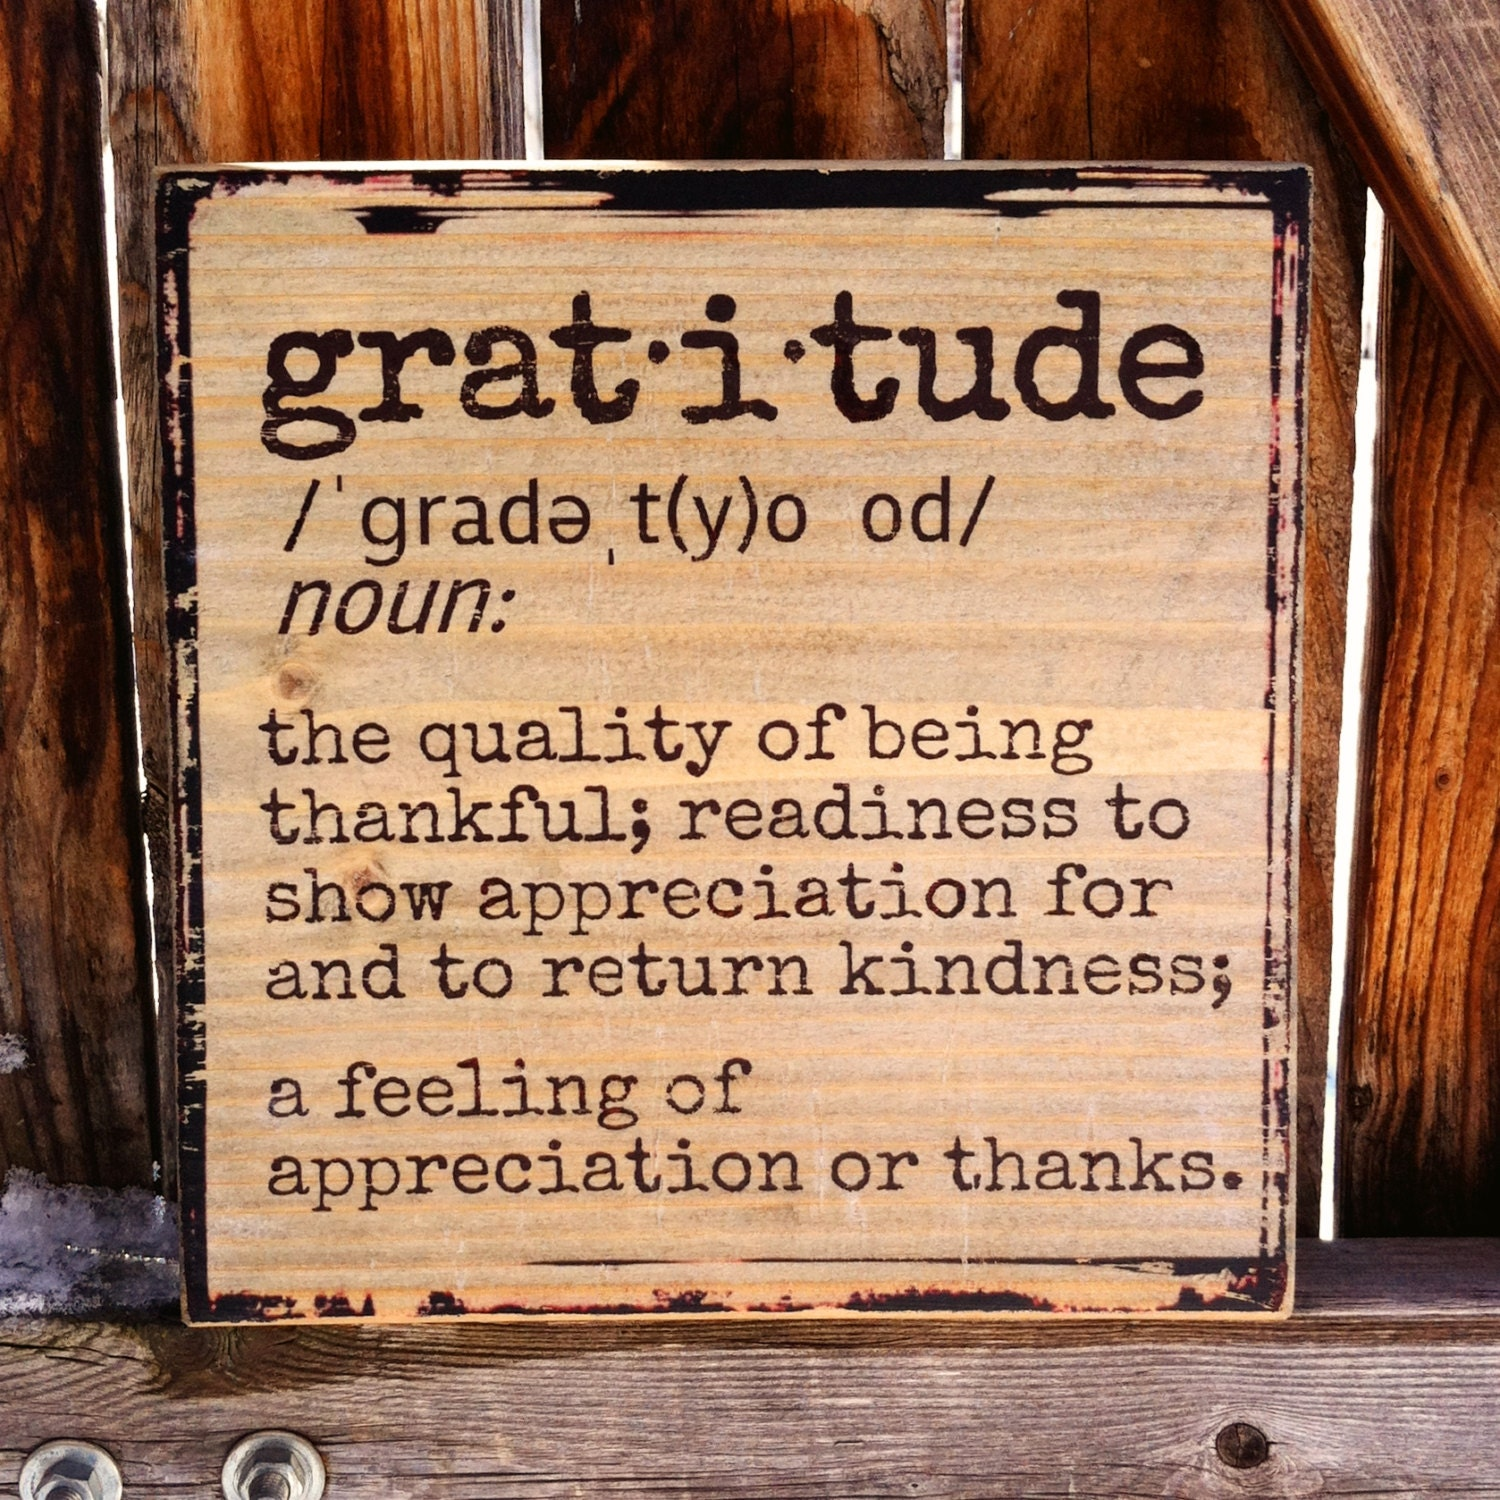 Meaning Of Wall Decor : Gratitude dictionary definition wooden shelf decor or wall